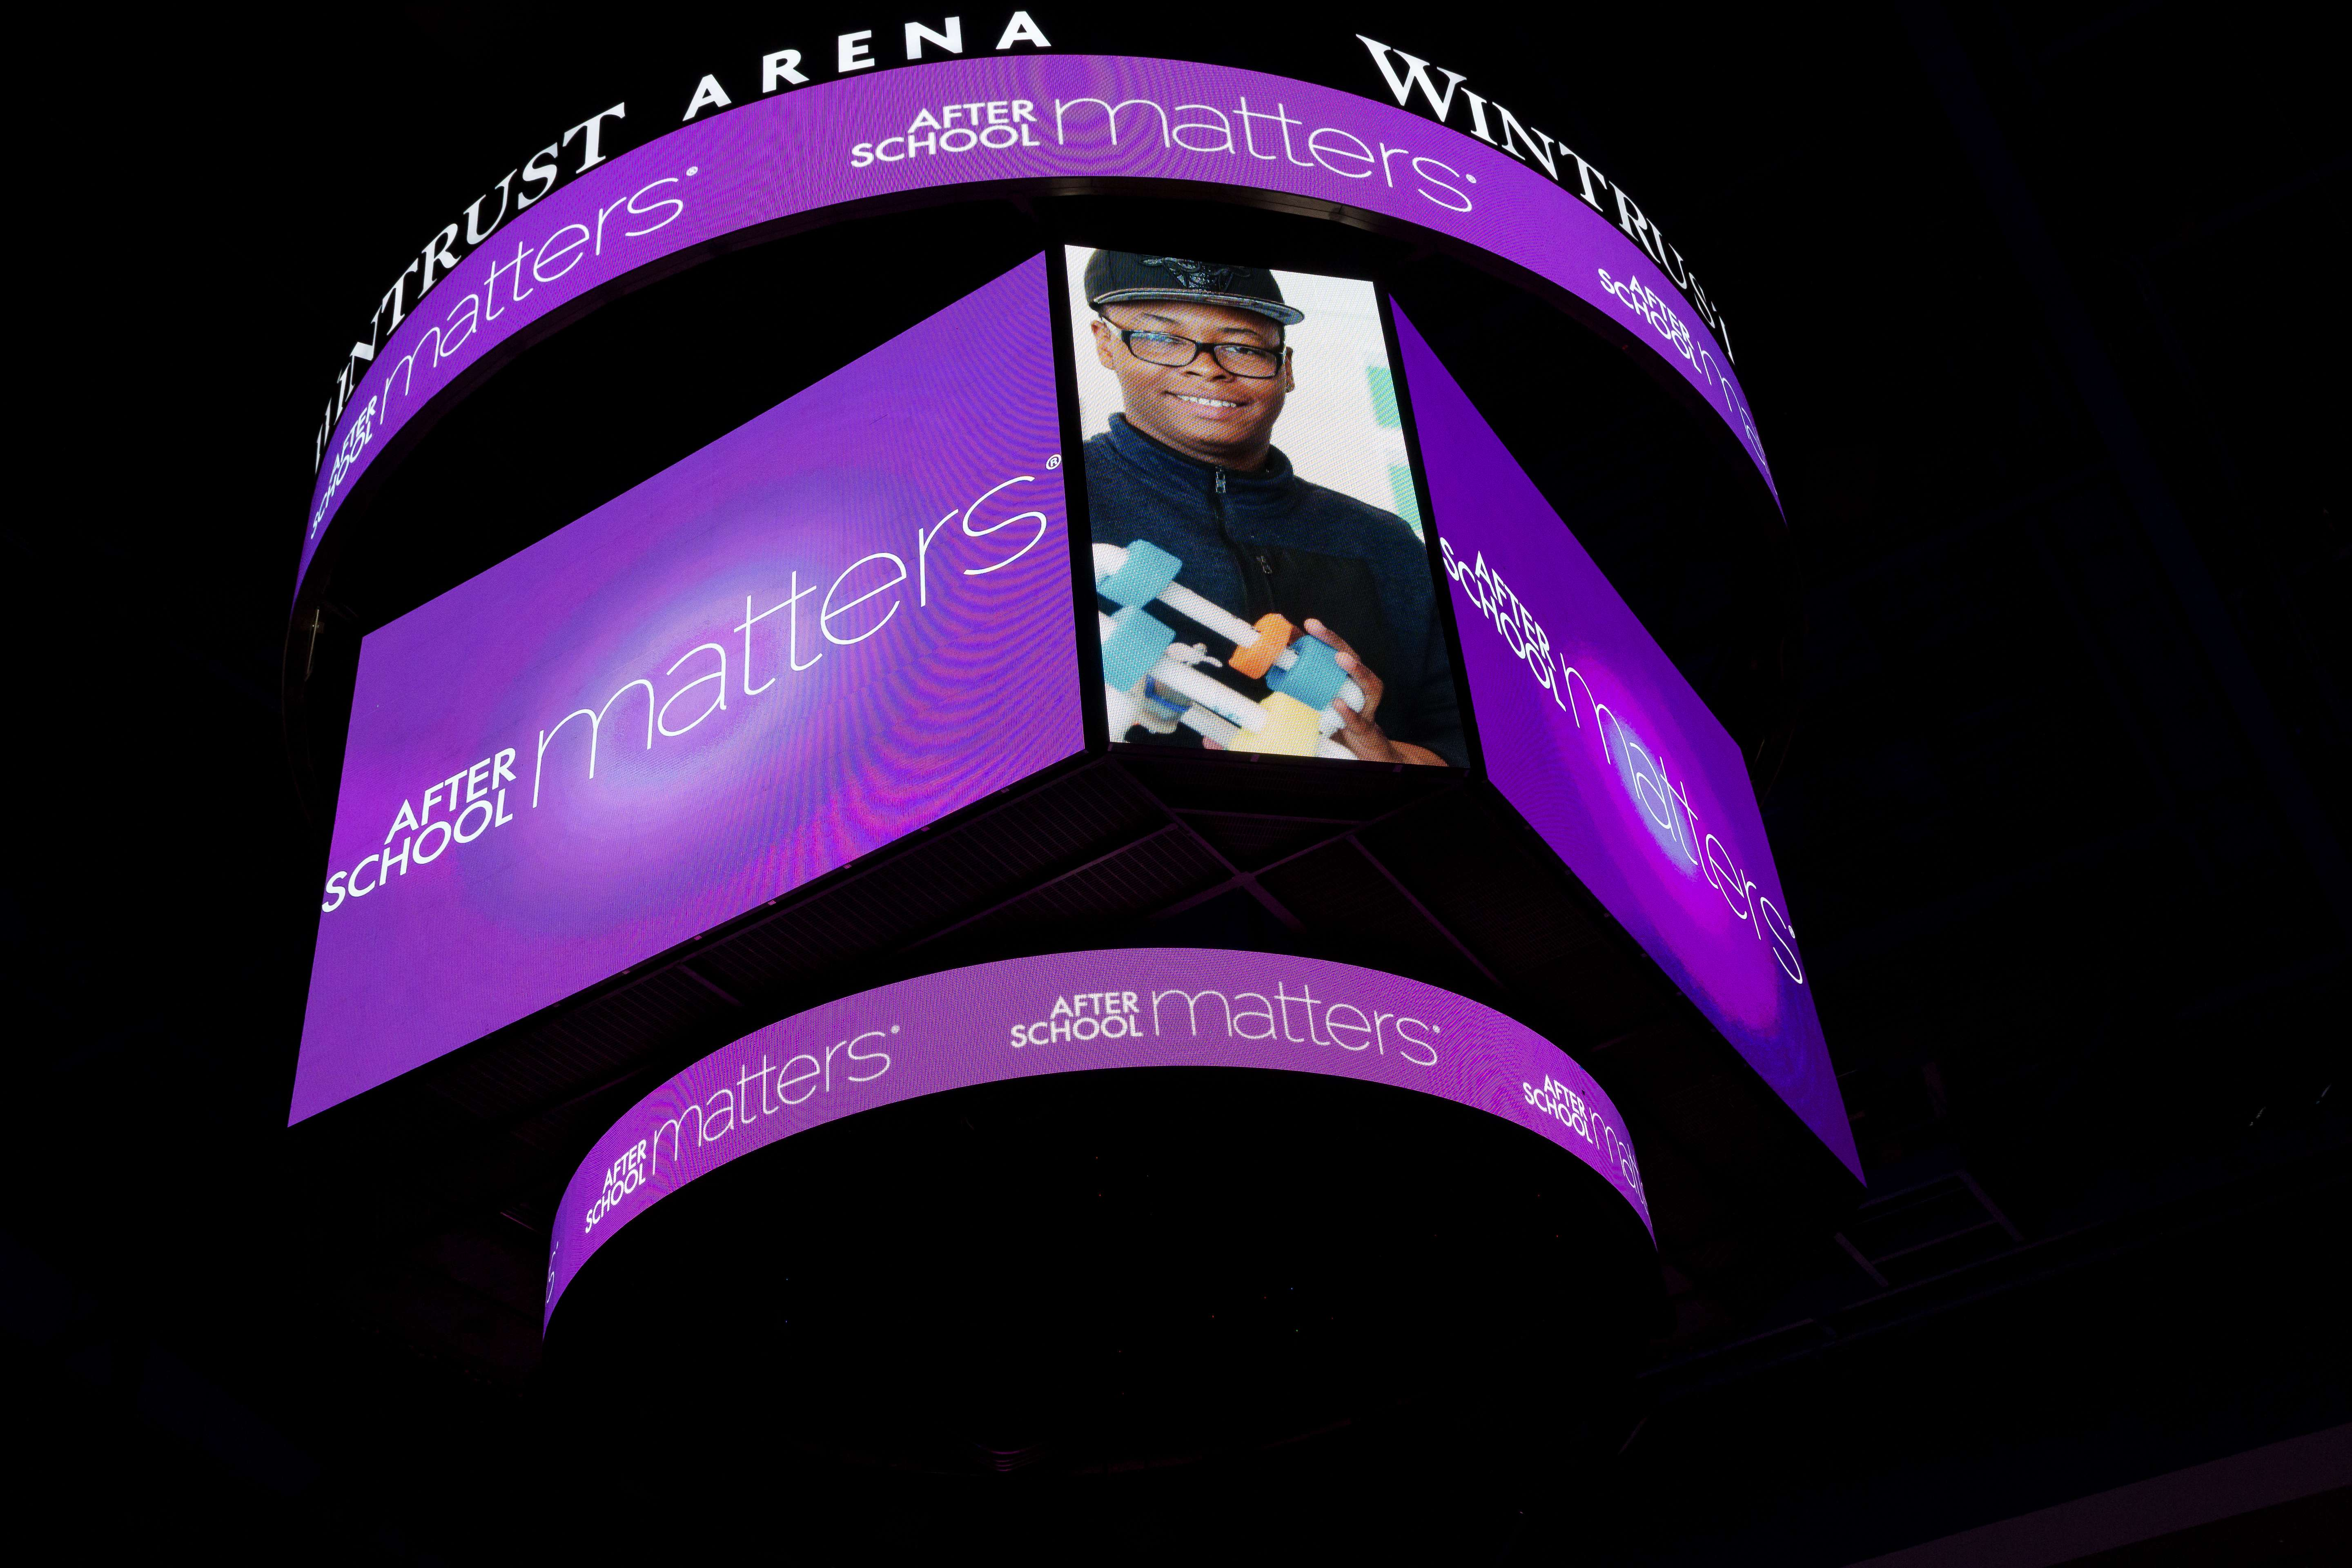 <p>After School Matters Annual Gala was proud to be one of the first events in the brand-new Wintrust Arena, celebrating transformative opportunities for thousands of Chicago's teenagers on September 18, 2017. Photo credit: Juan Martinez Photography</p>